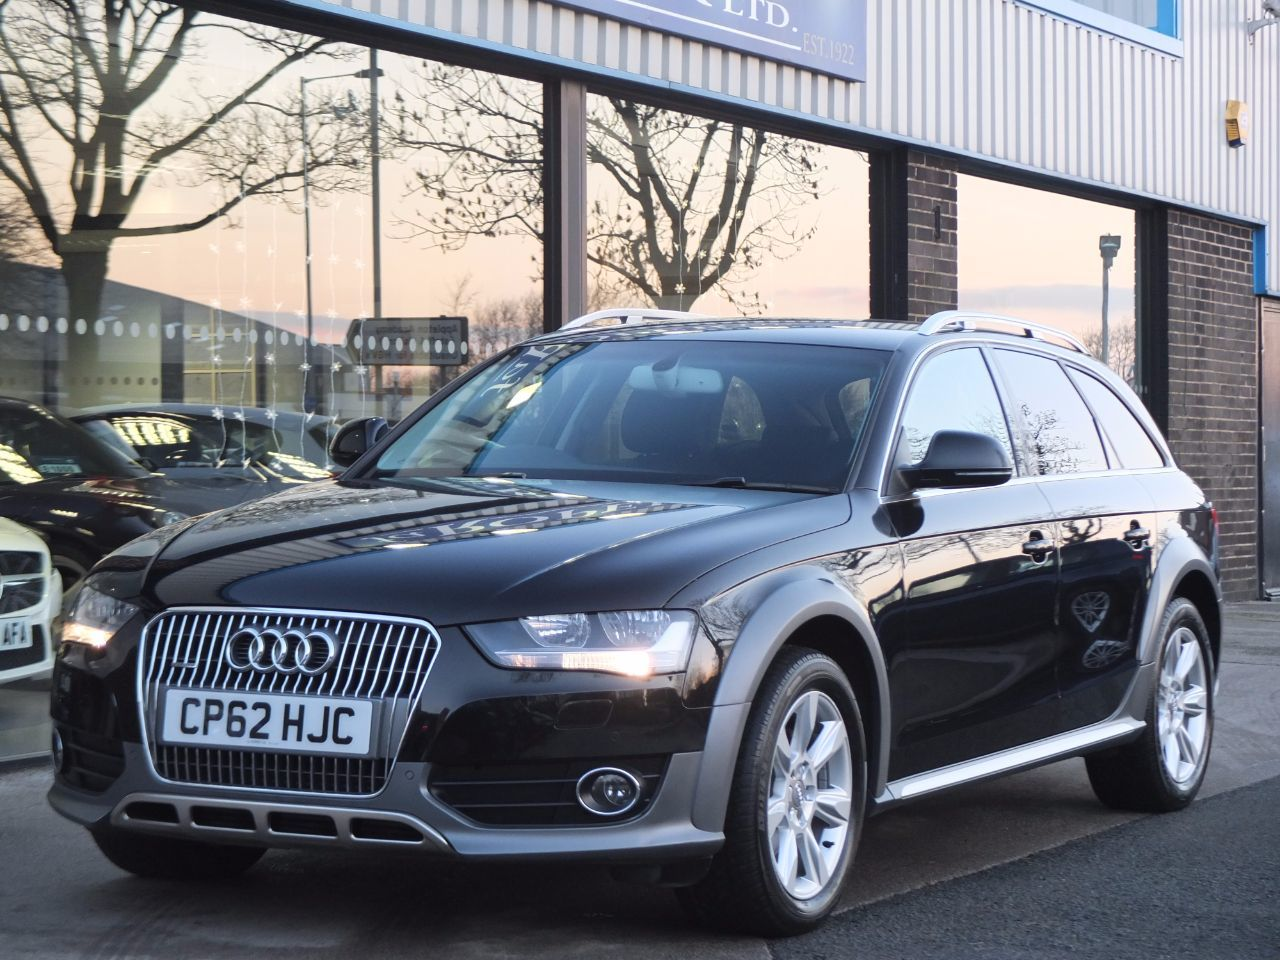 Audi A4 Allroad 2.0 TDI quattro S tronic 177ps Estate Diesel Phantom Black MetallicAudi A4 Allroad 2.0 TDI quattro S tronic 177ps Estate Diesel Phantom Black Metallic at fa Roper Ltd Bradford